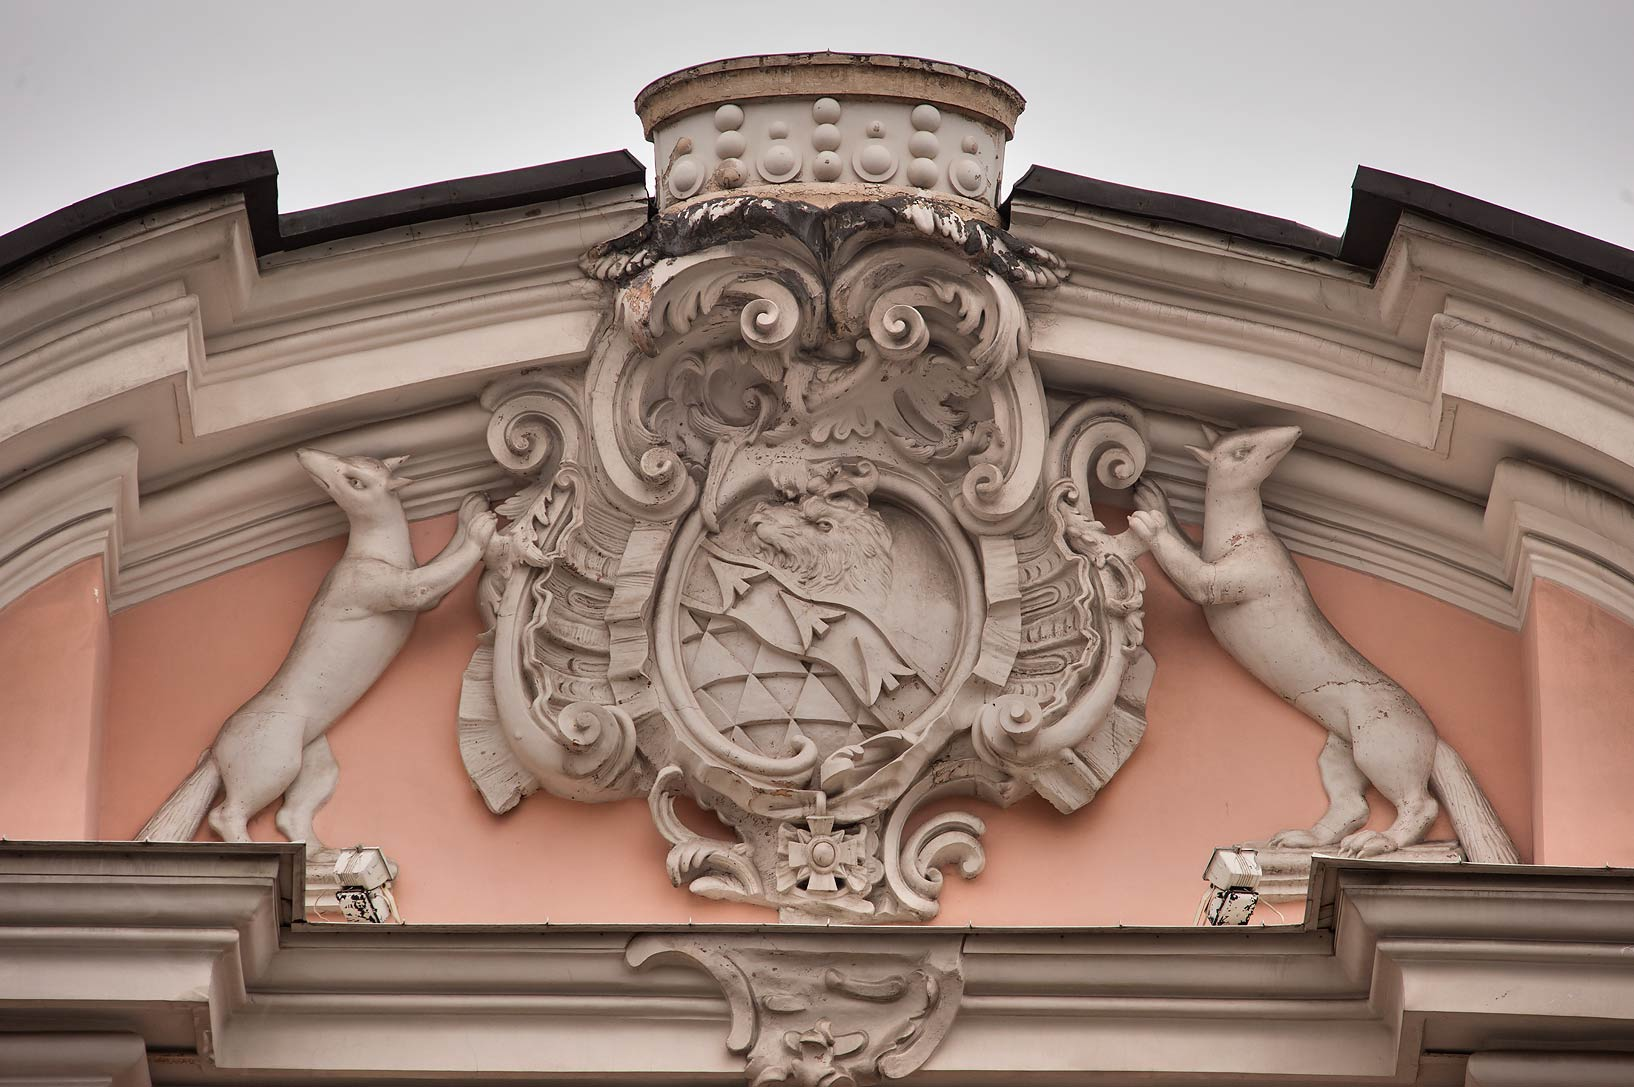 Heraldic decoration at 20 Nevsky Prospect. St.Petersburg, Russia